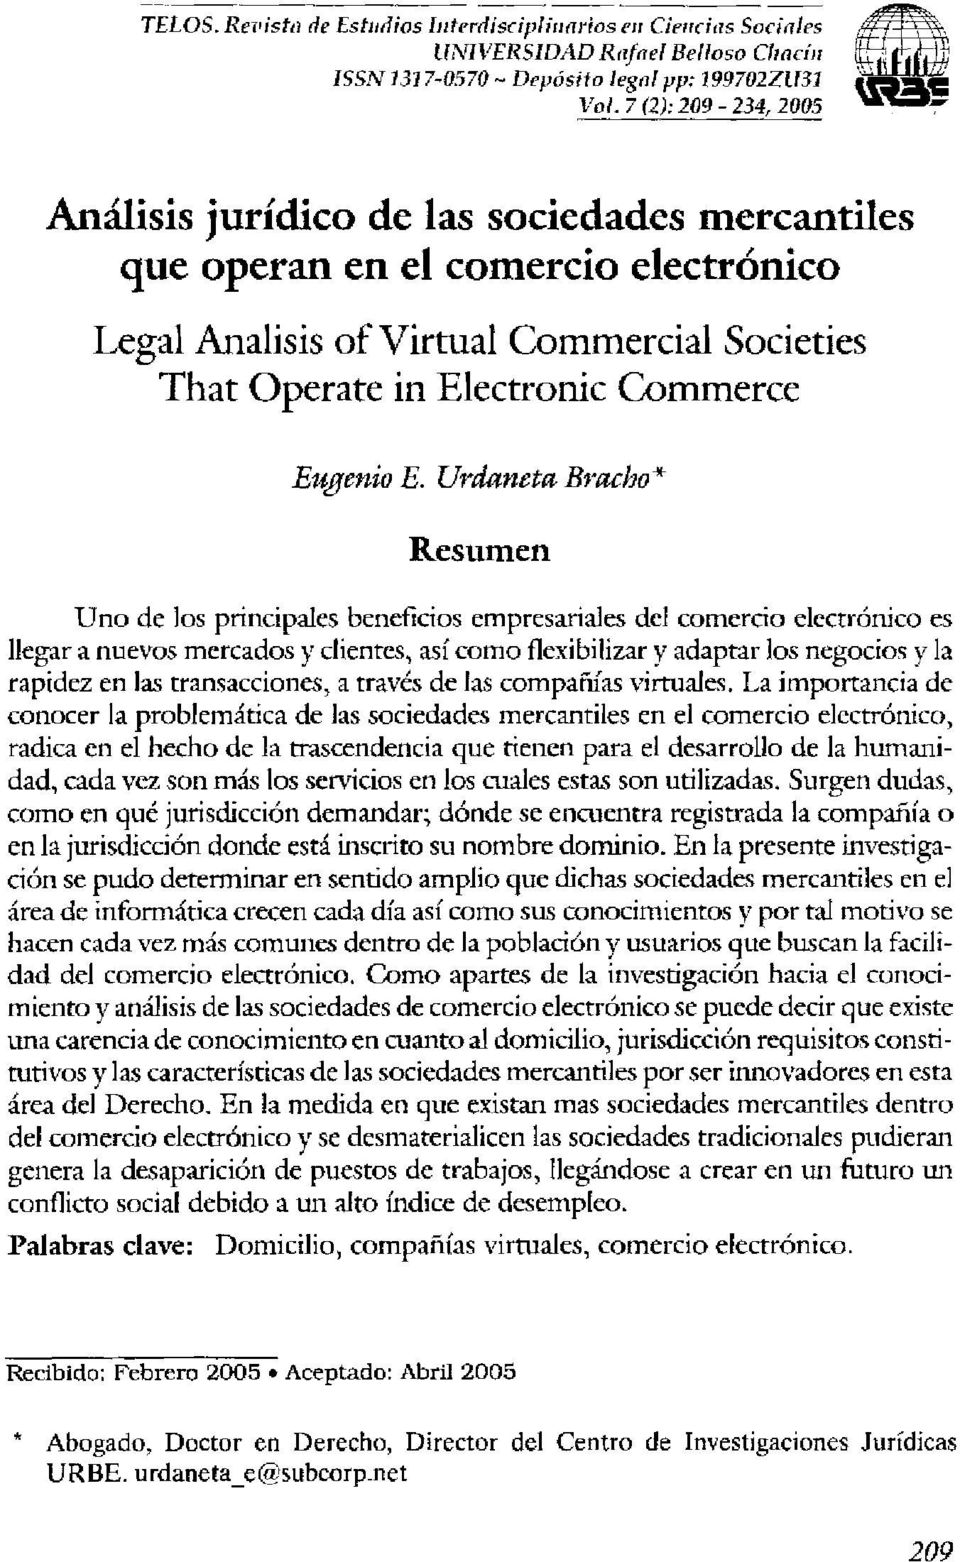 las sociedades mercantiles que operan en el comercio electrónico Legal Analisis ofvirtual Cornll1ercial Societies That Operate in Electronic Commerce Eugenio E.